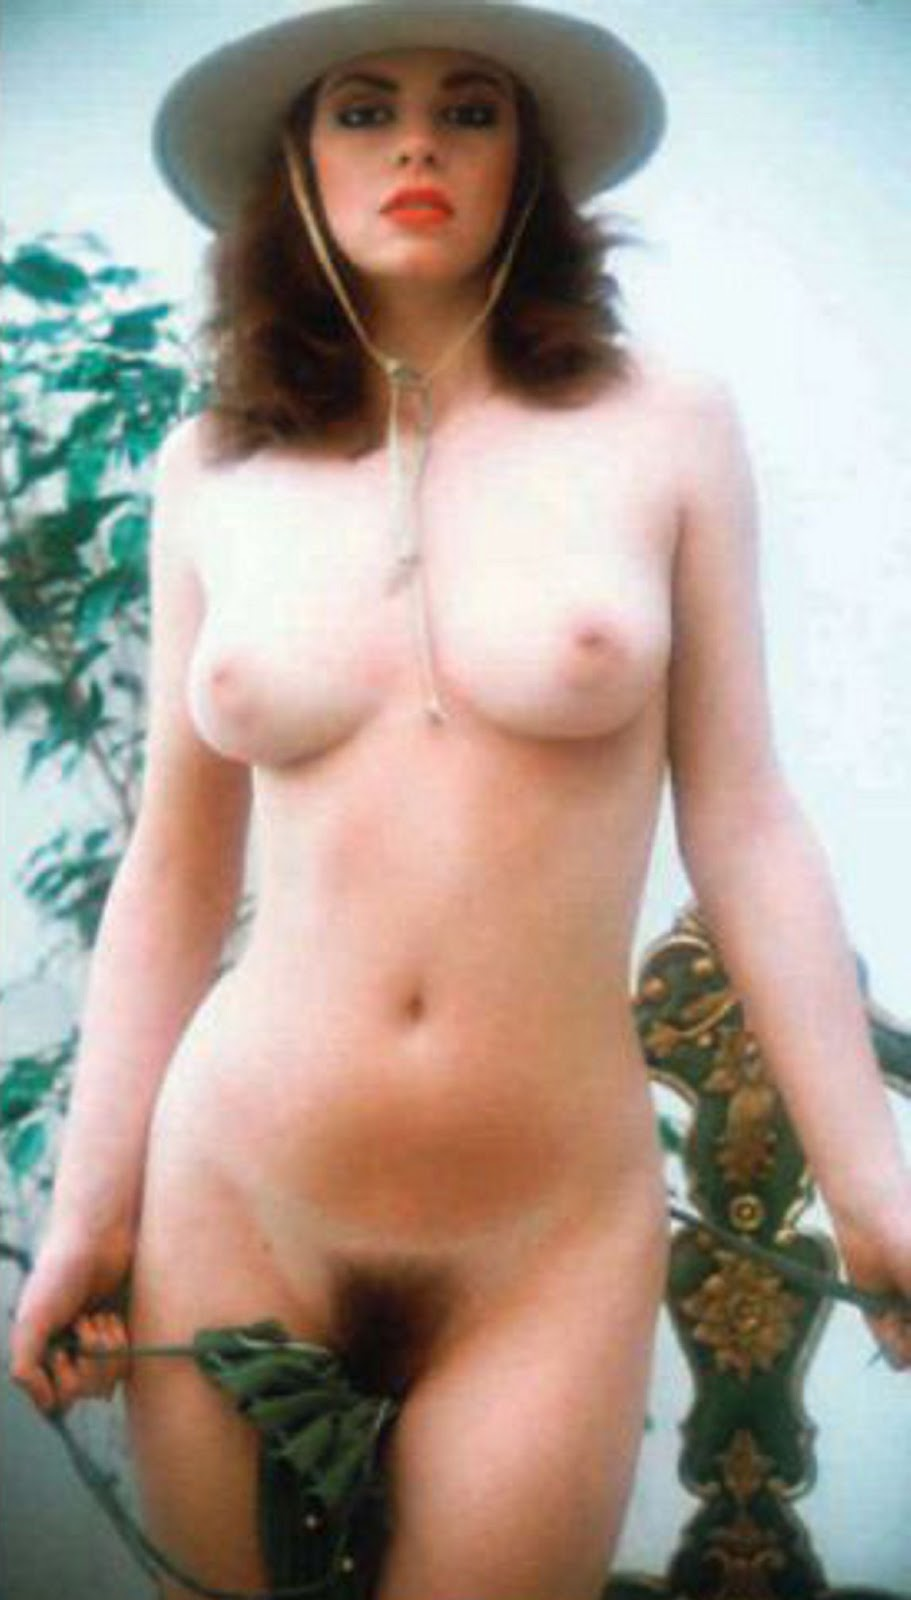 Hustler Nude Pictures